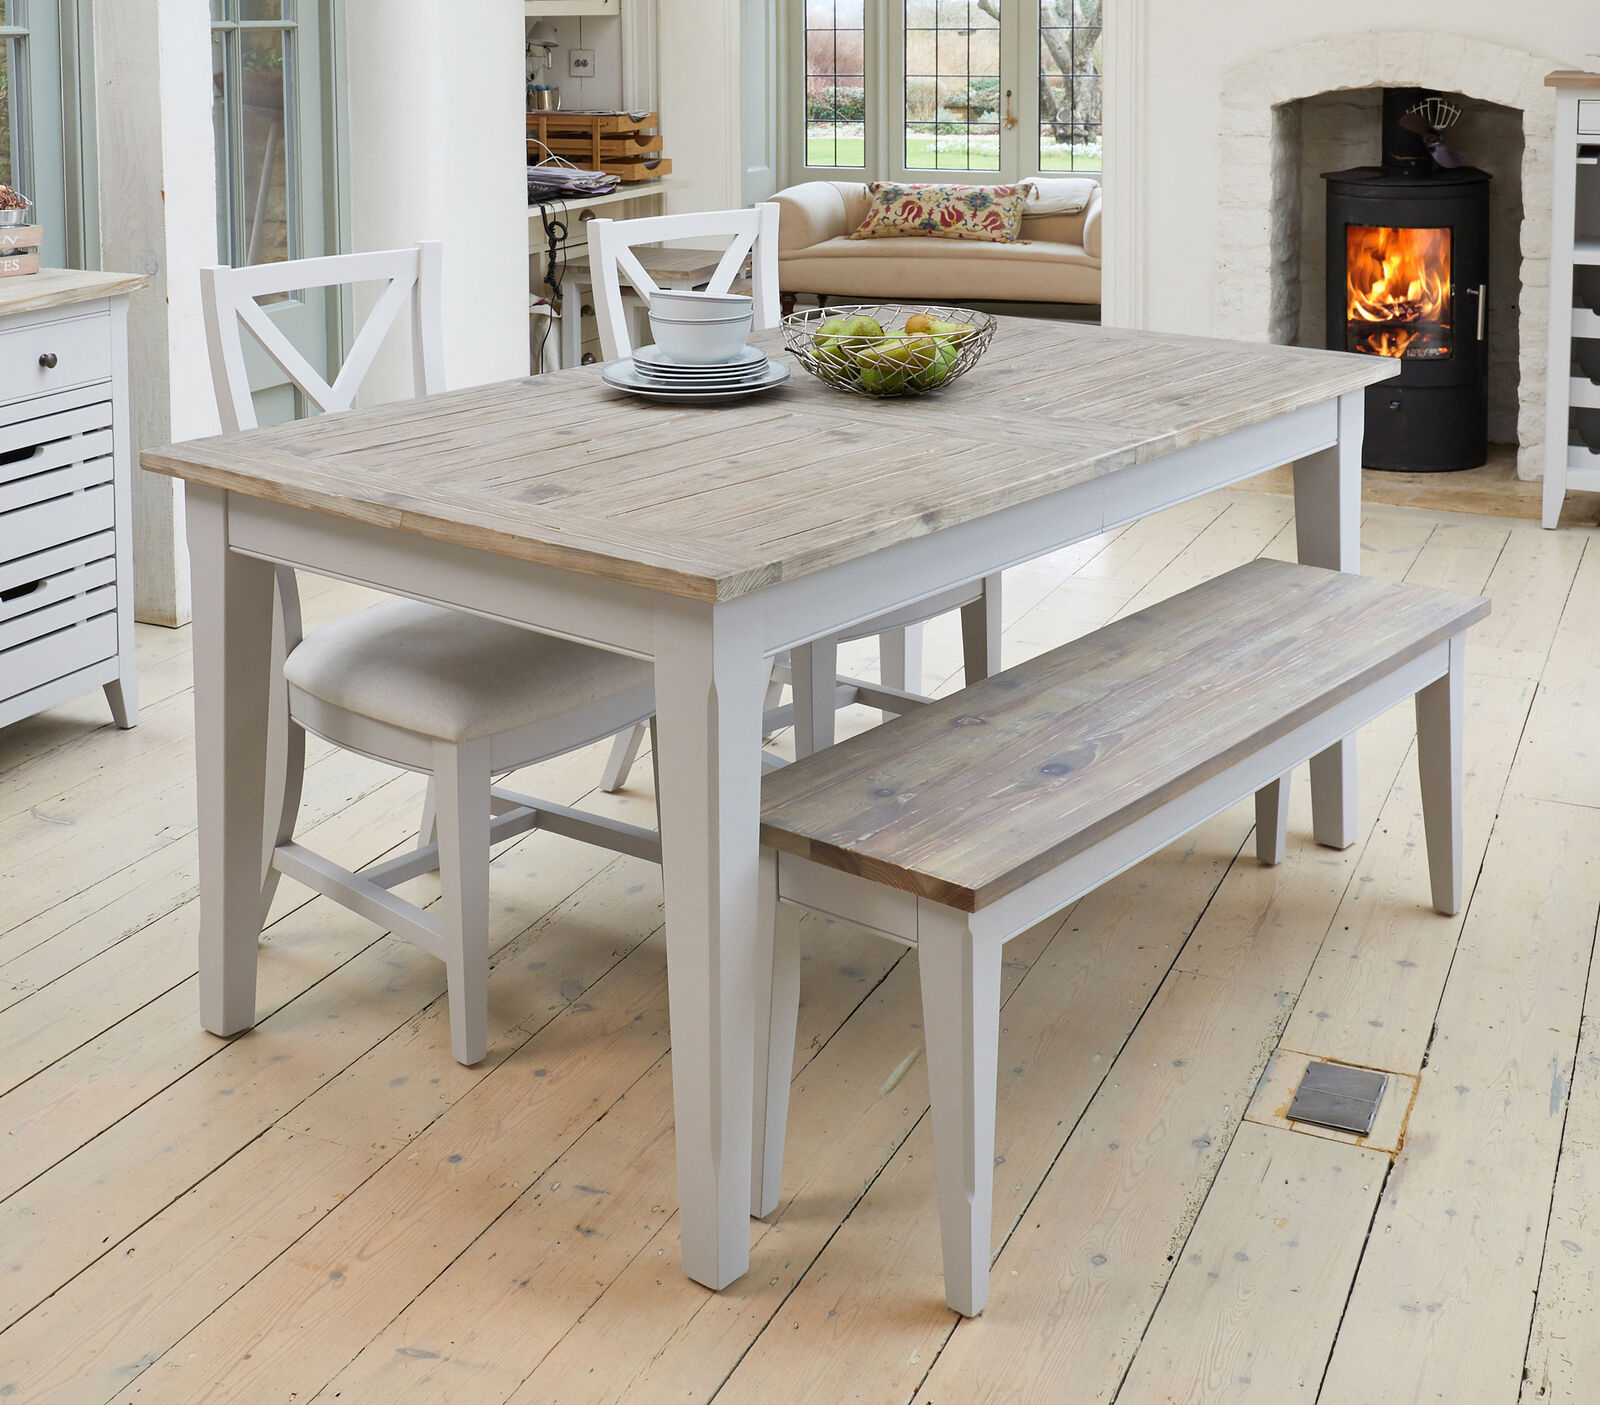 Benson Grey Painted Furniture Extending Dining Table Two Chairs And Bench Set For Most Current Langton Reclaimed Wood Dining Tables (View 18 of 25)